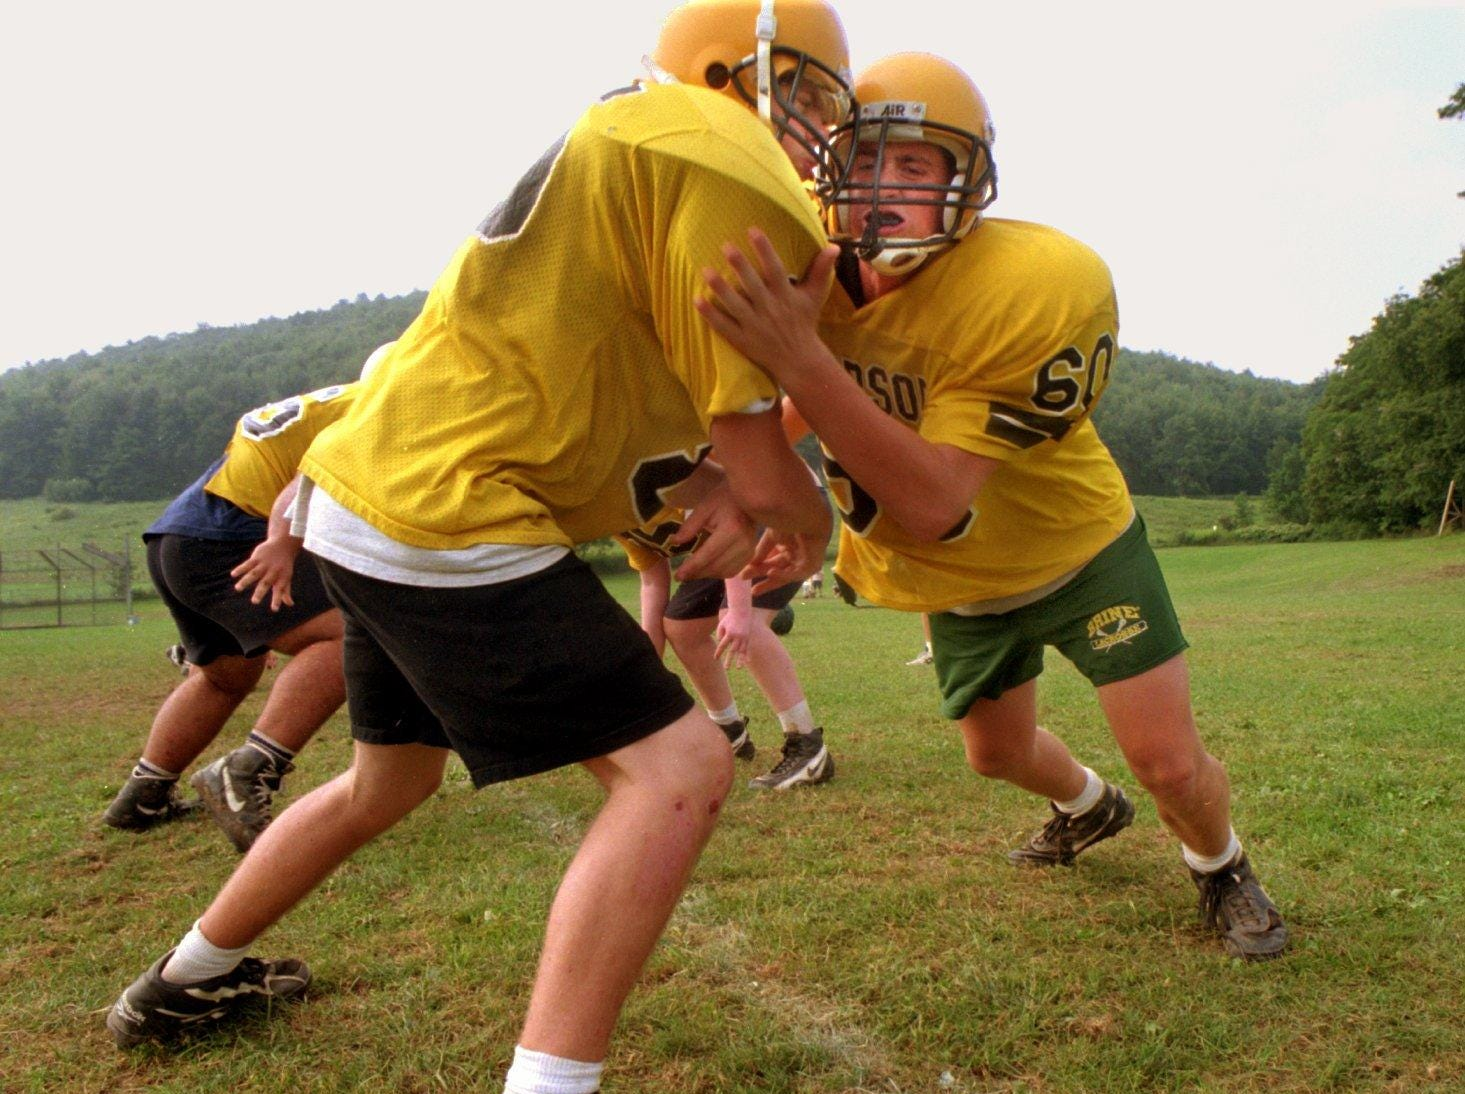 From 1996: Windsor High School football linemen John Connelly, right, and John Oswald, left, practice a defensive line drill.